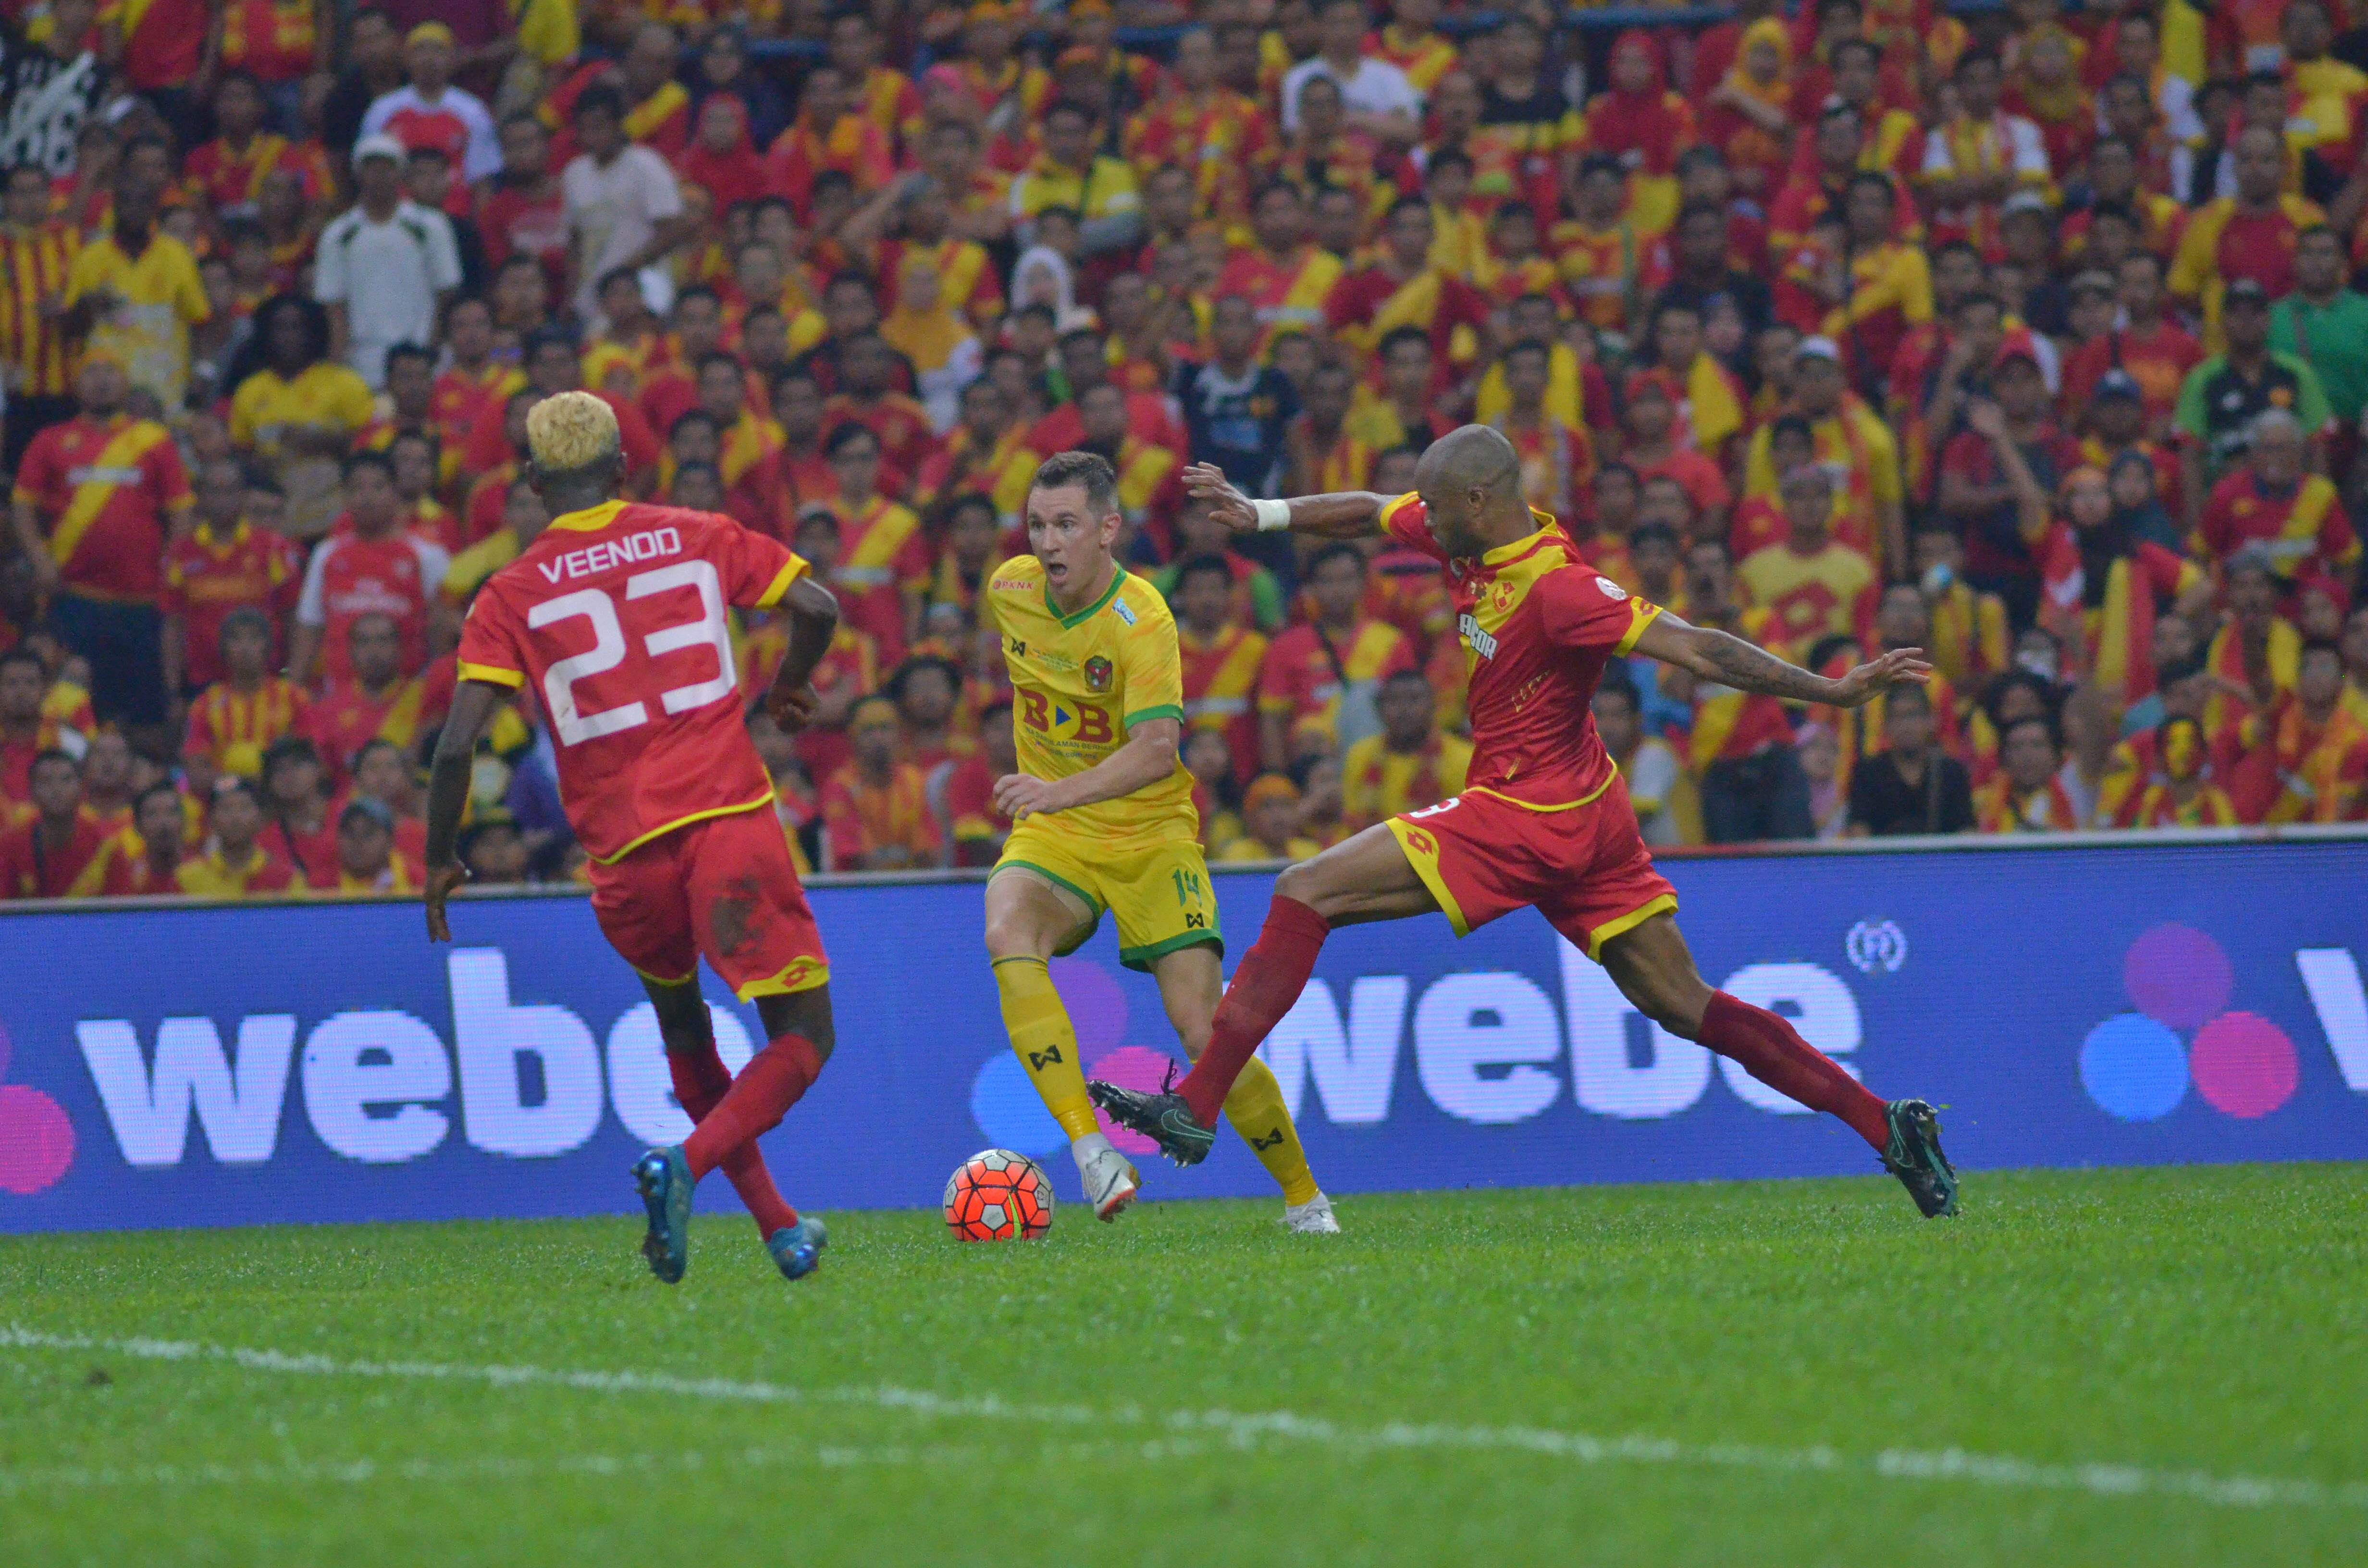 Kedah's Shane Smeltz being marked by Selangor's Ugo Ukah and S. Veenod in the Malaysia Cup final 30/10/16